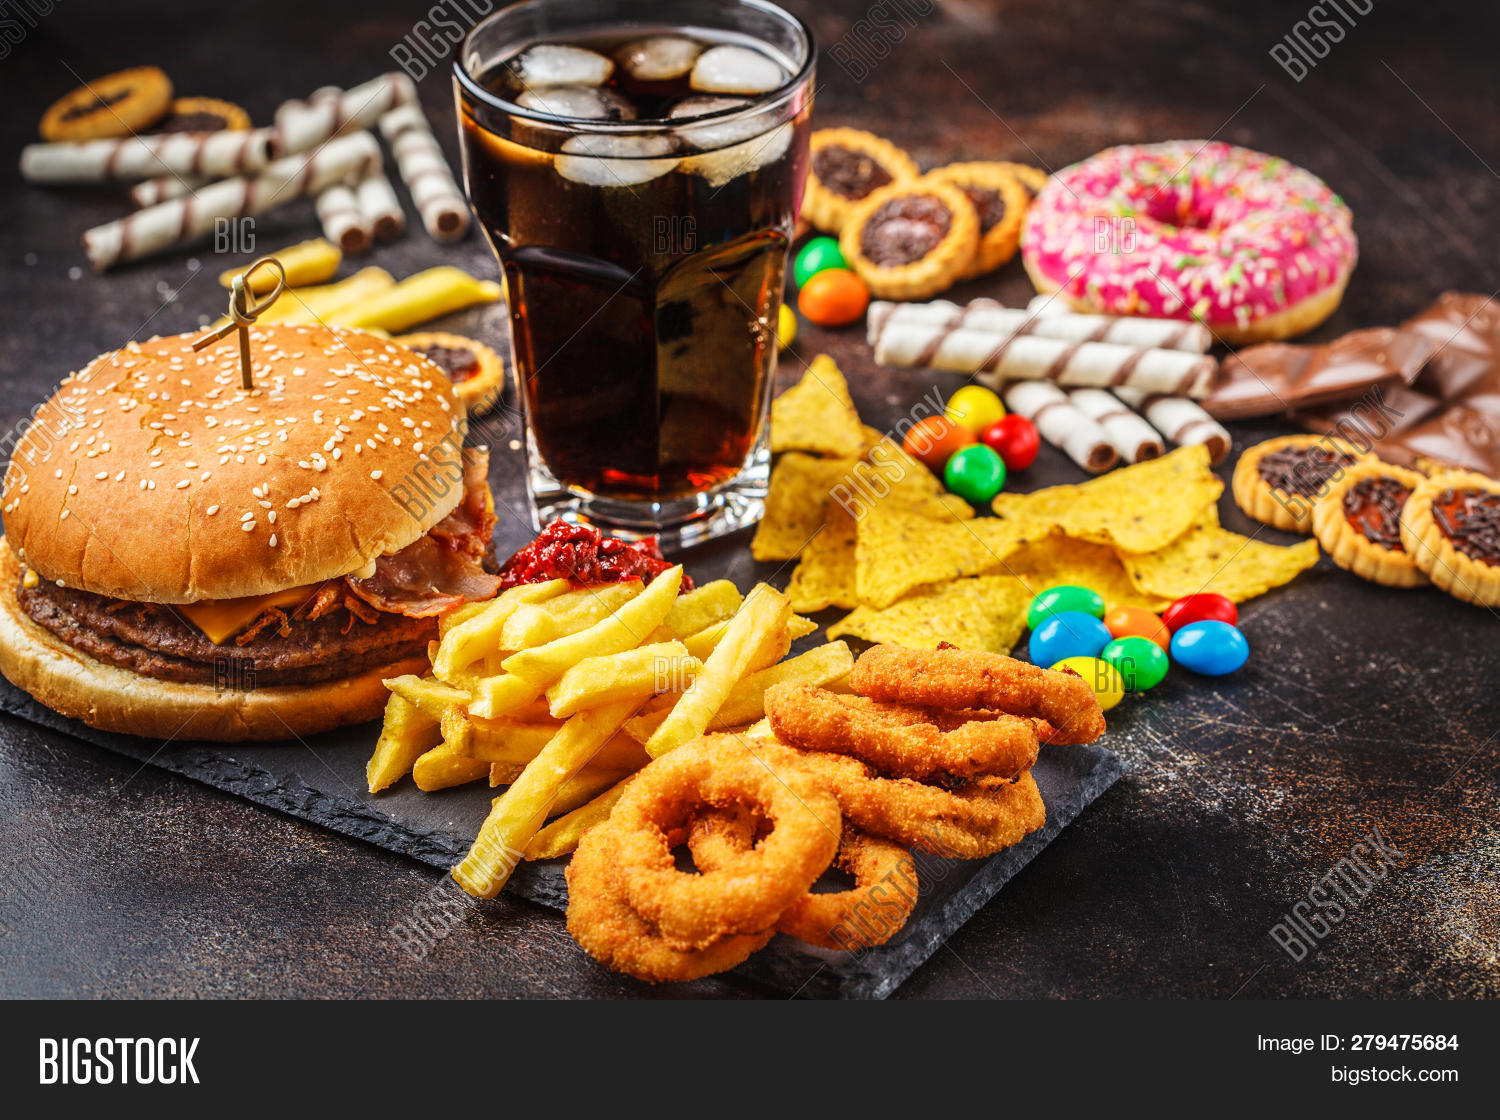 Junk Food Concept Image Amp Photo Free Trial